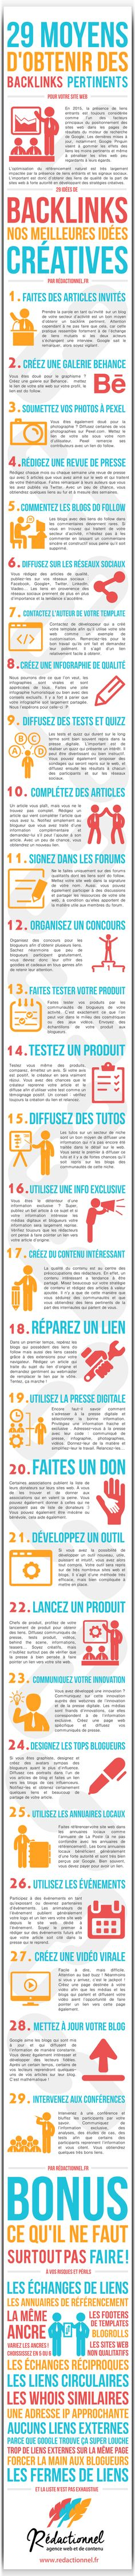 29 moyens d'obtenir des backlinks. by abondance.com